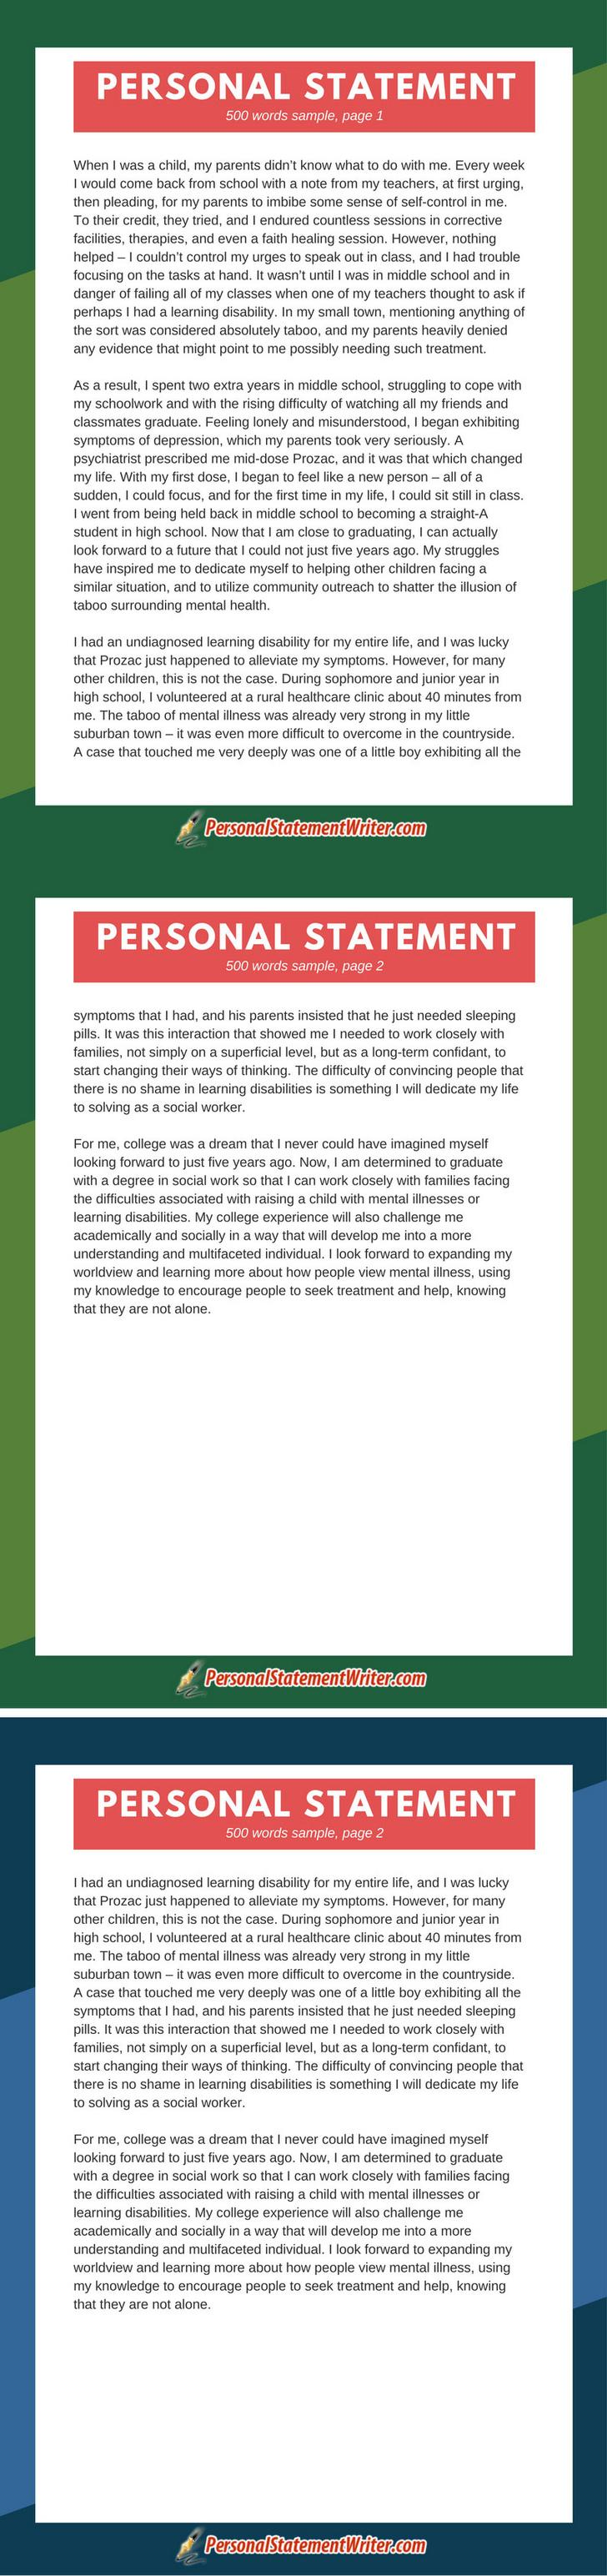 Check Out This 500 Word Personal Statement Sample And Get To Writing Yours  Now See